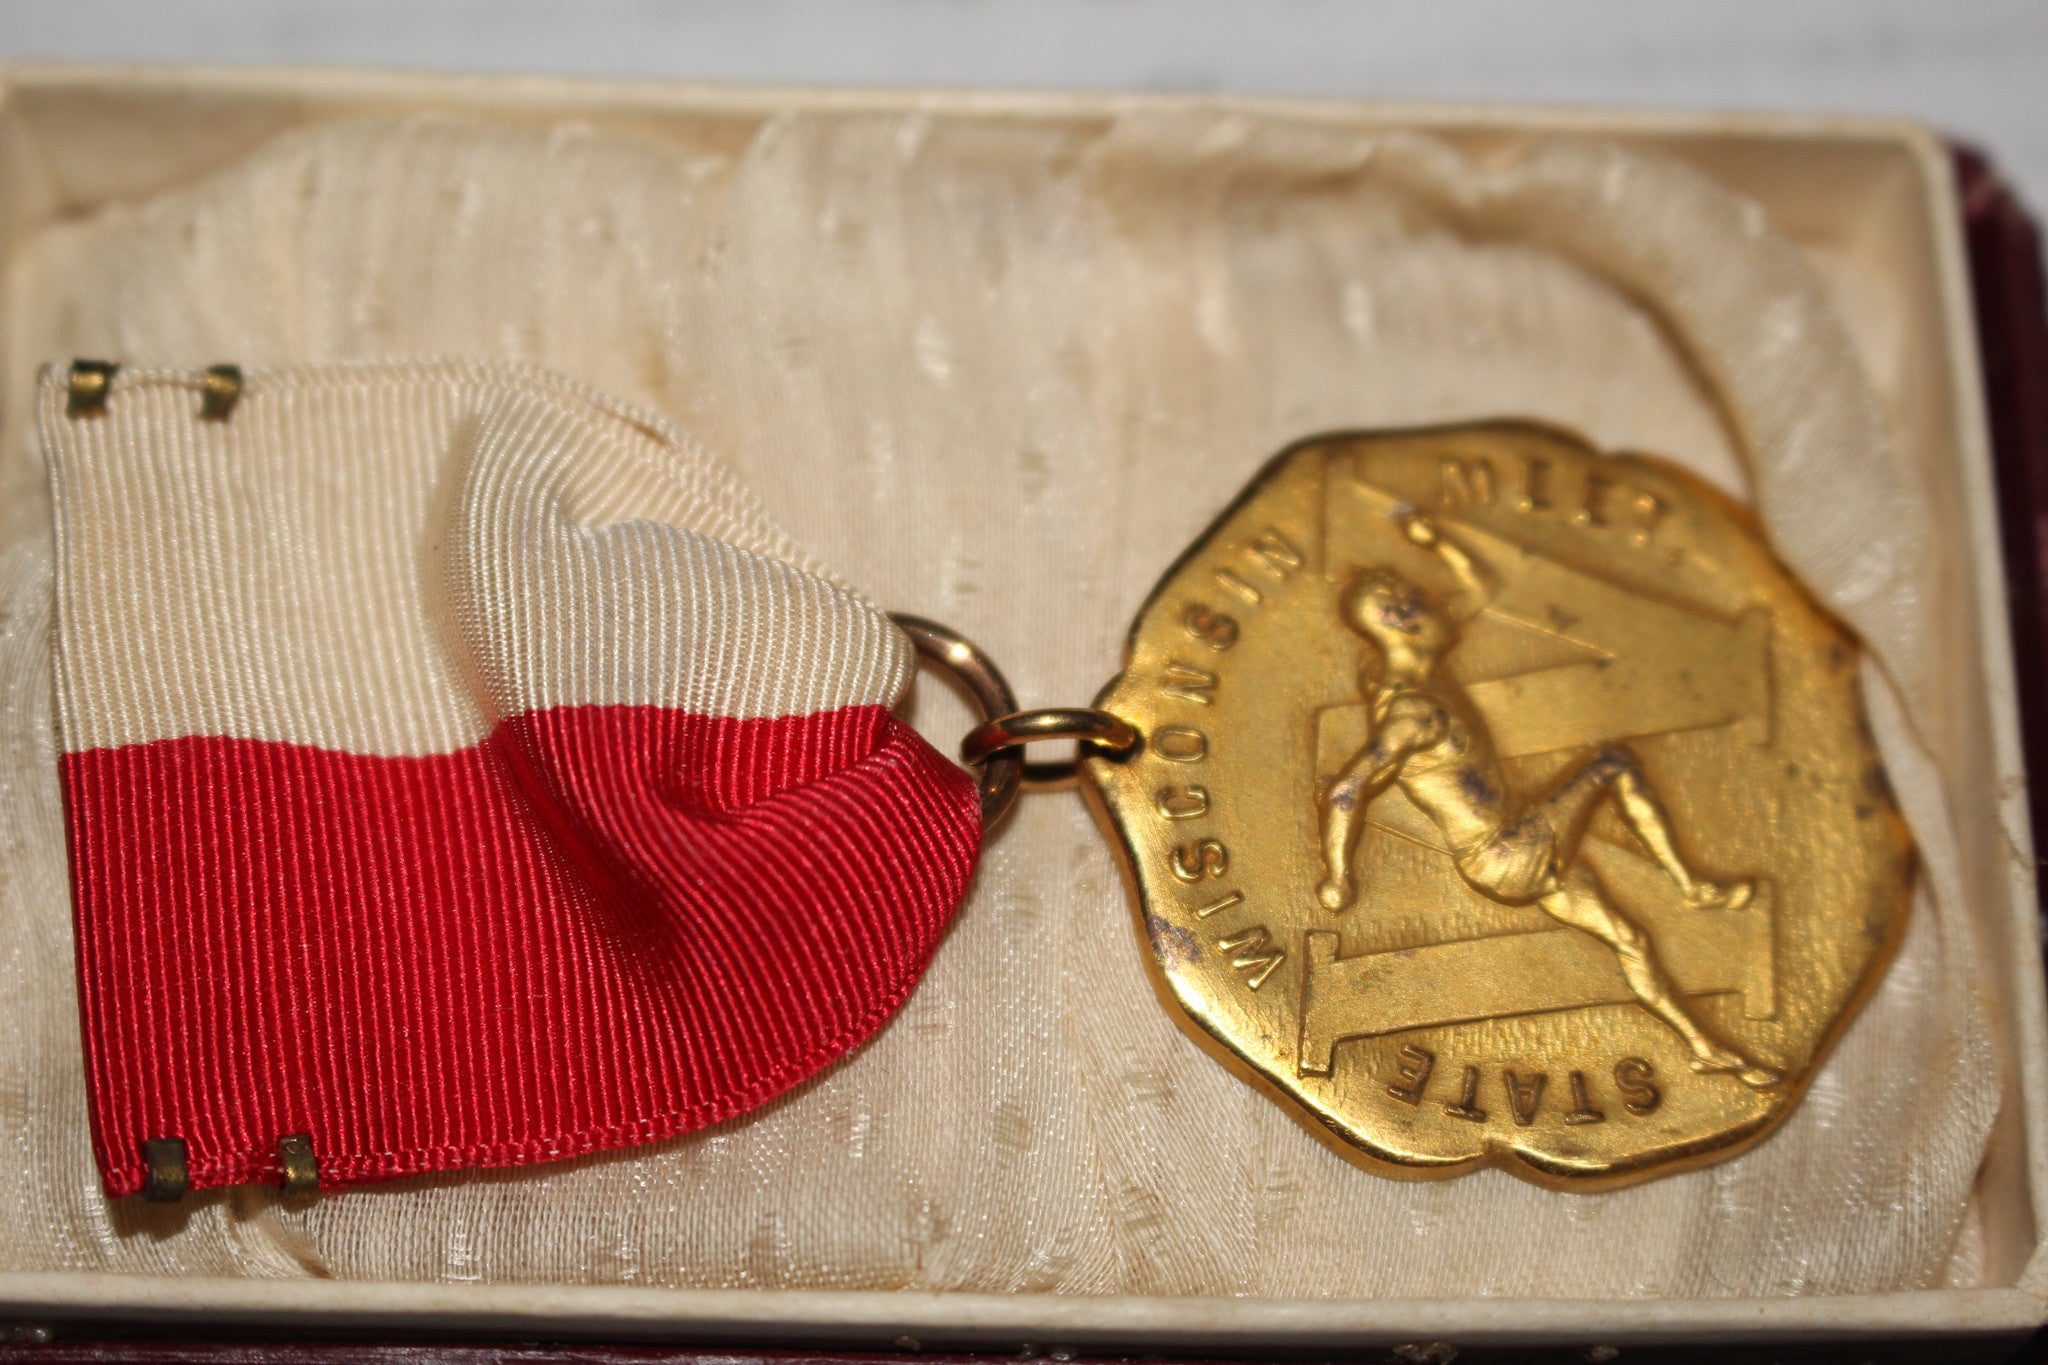 1929 Wisconsin High School 440 YD State Champion Medal - Vintage Indy Sports